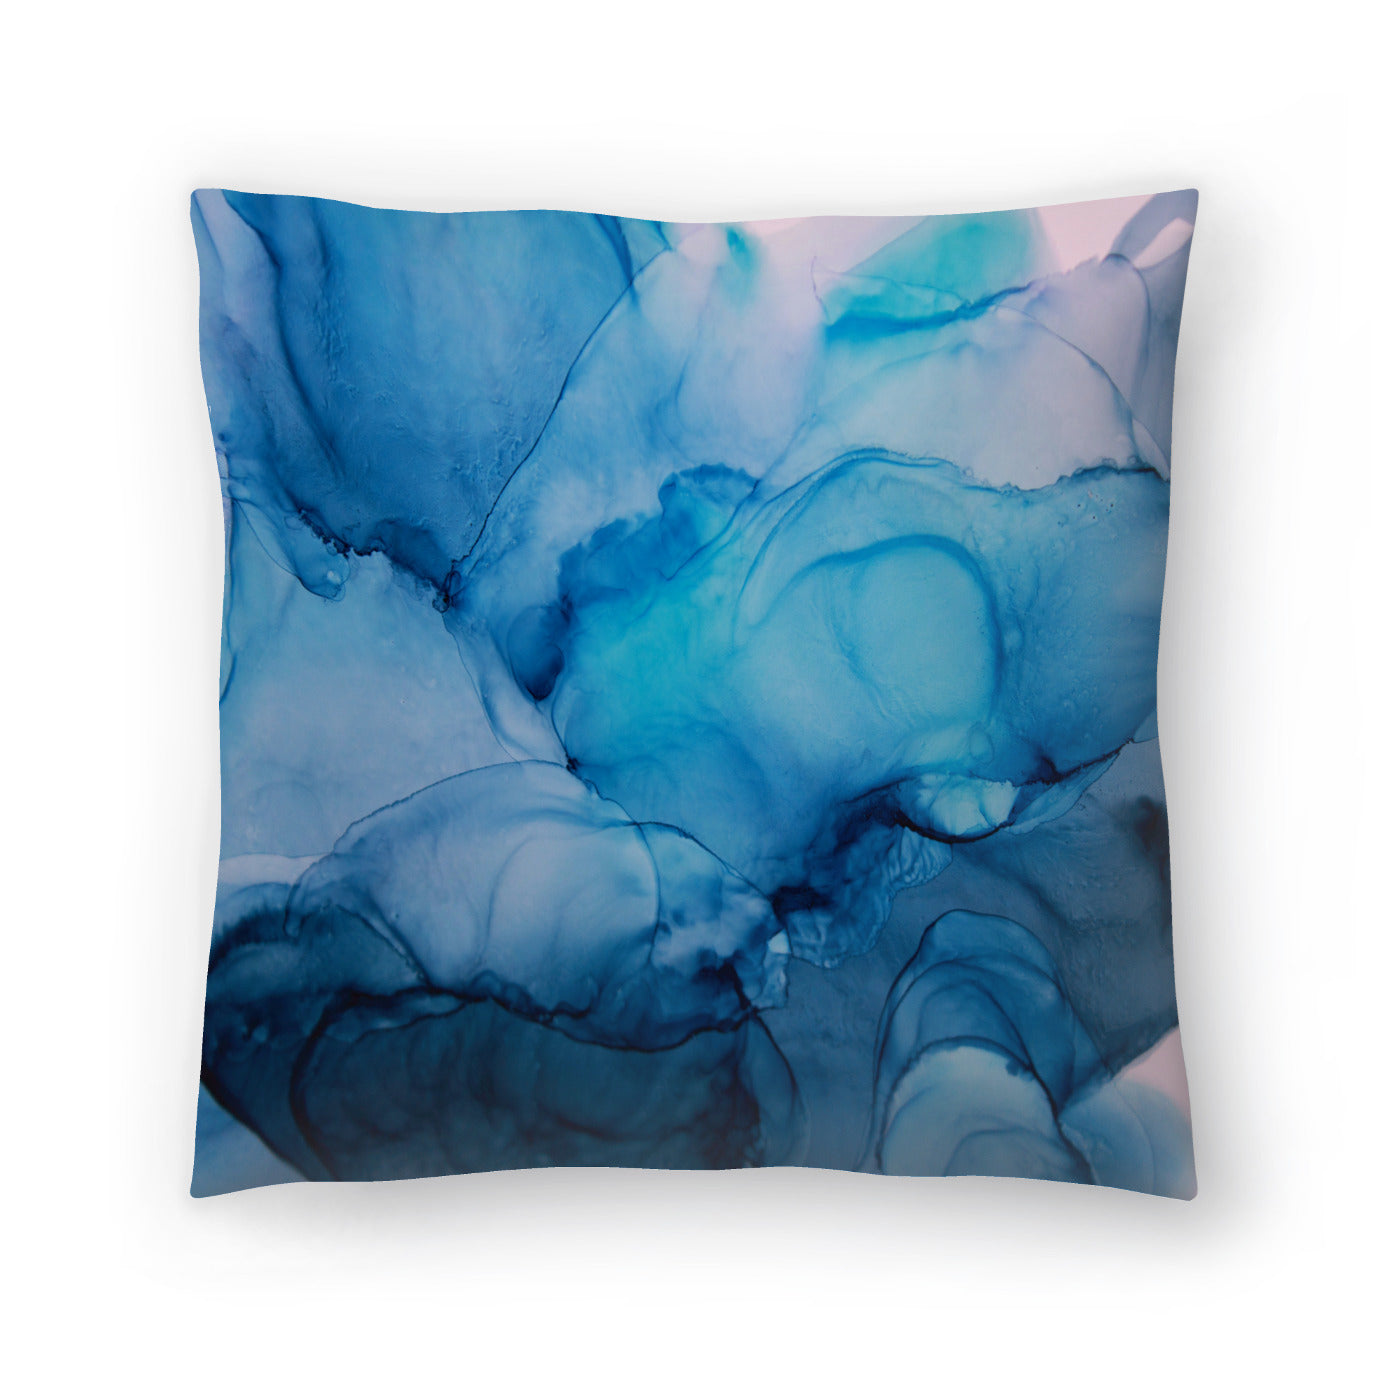 In Too Deep by Emma Thomas Decorative Pillow - Decorative Pillow - Americanflat